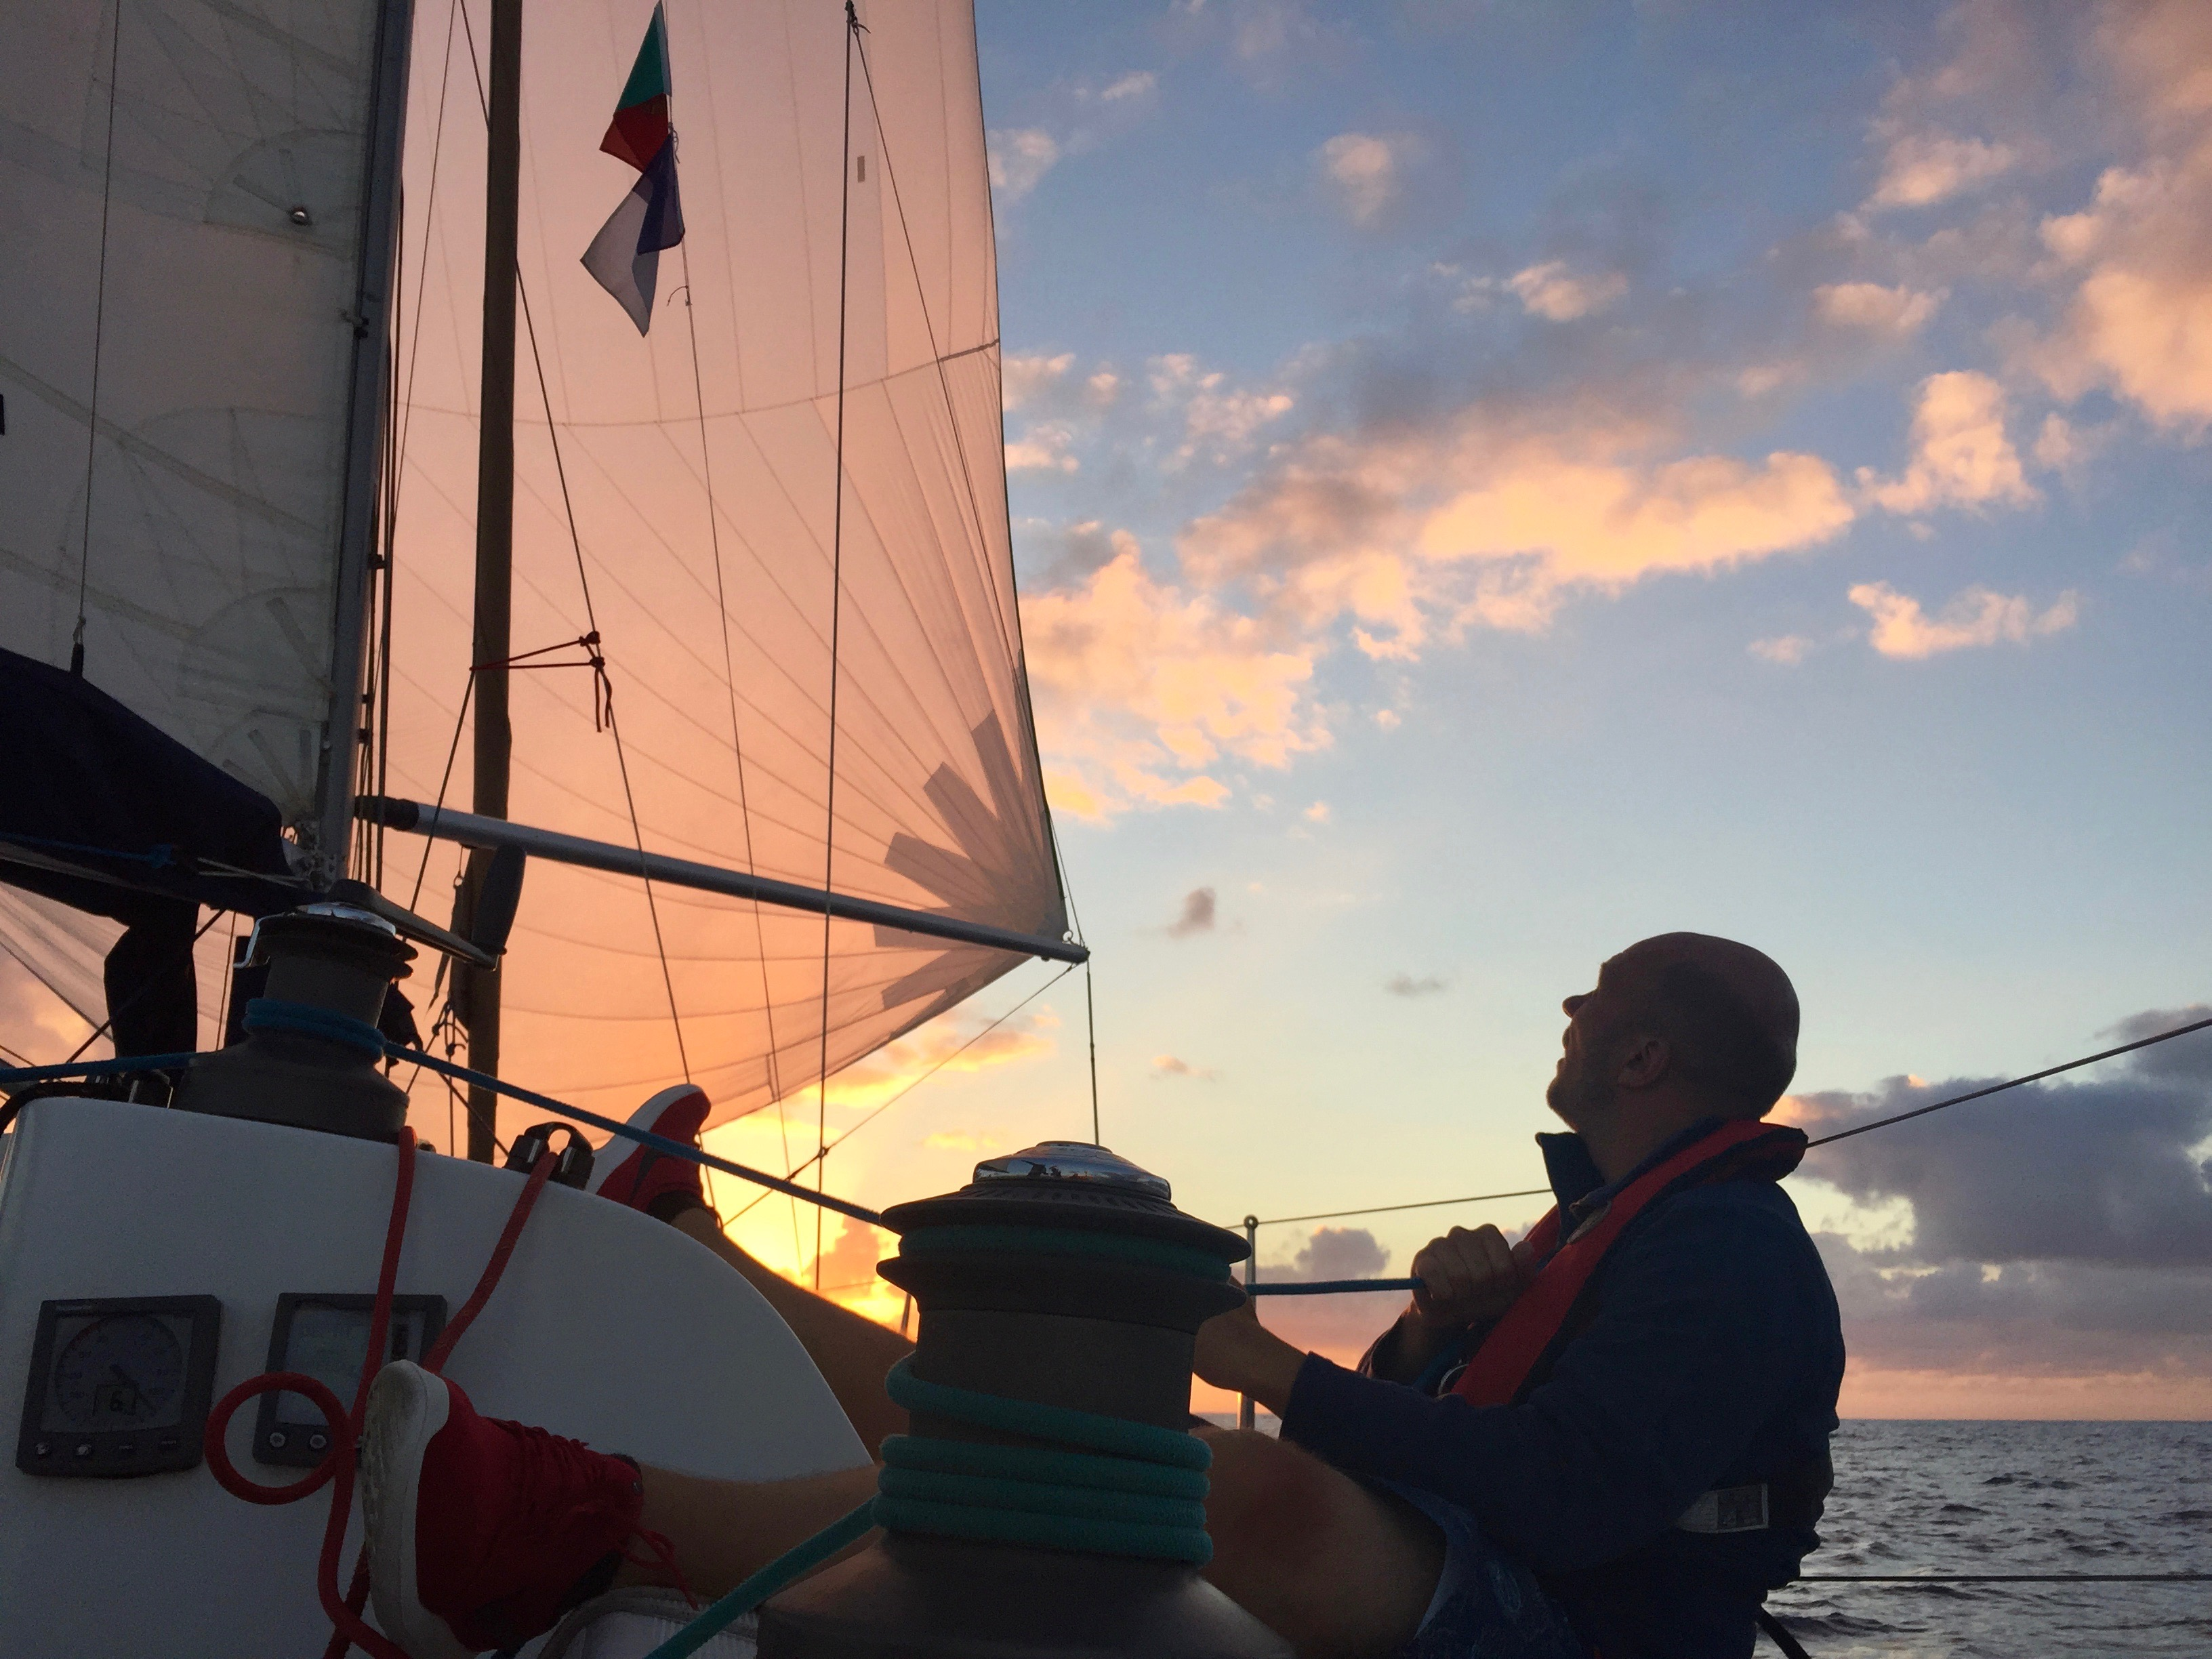 Trimming the spinnaker